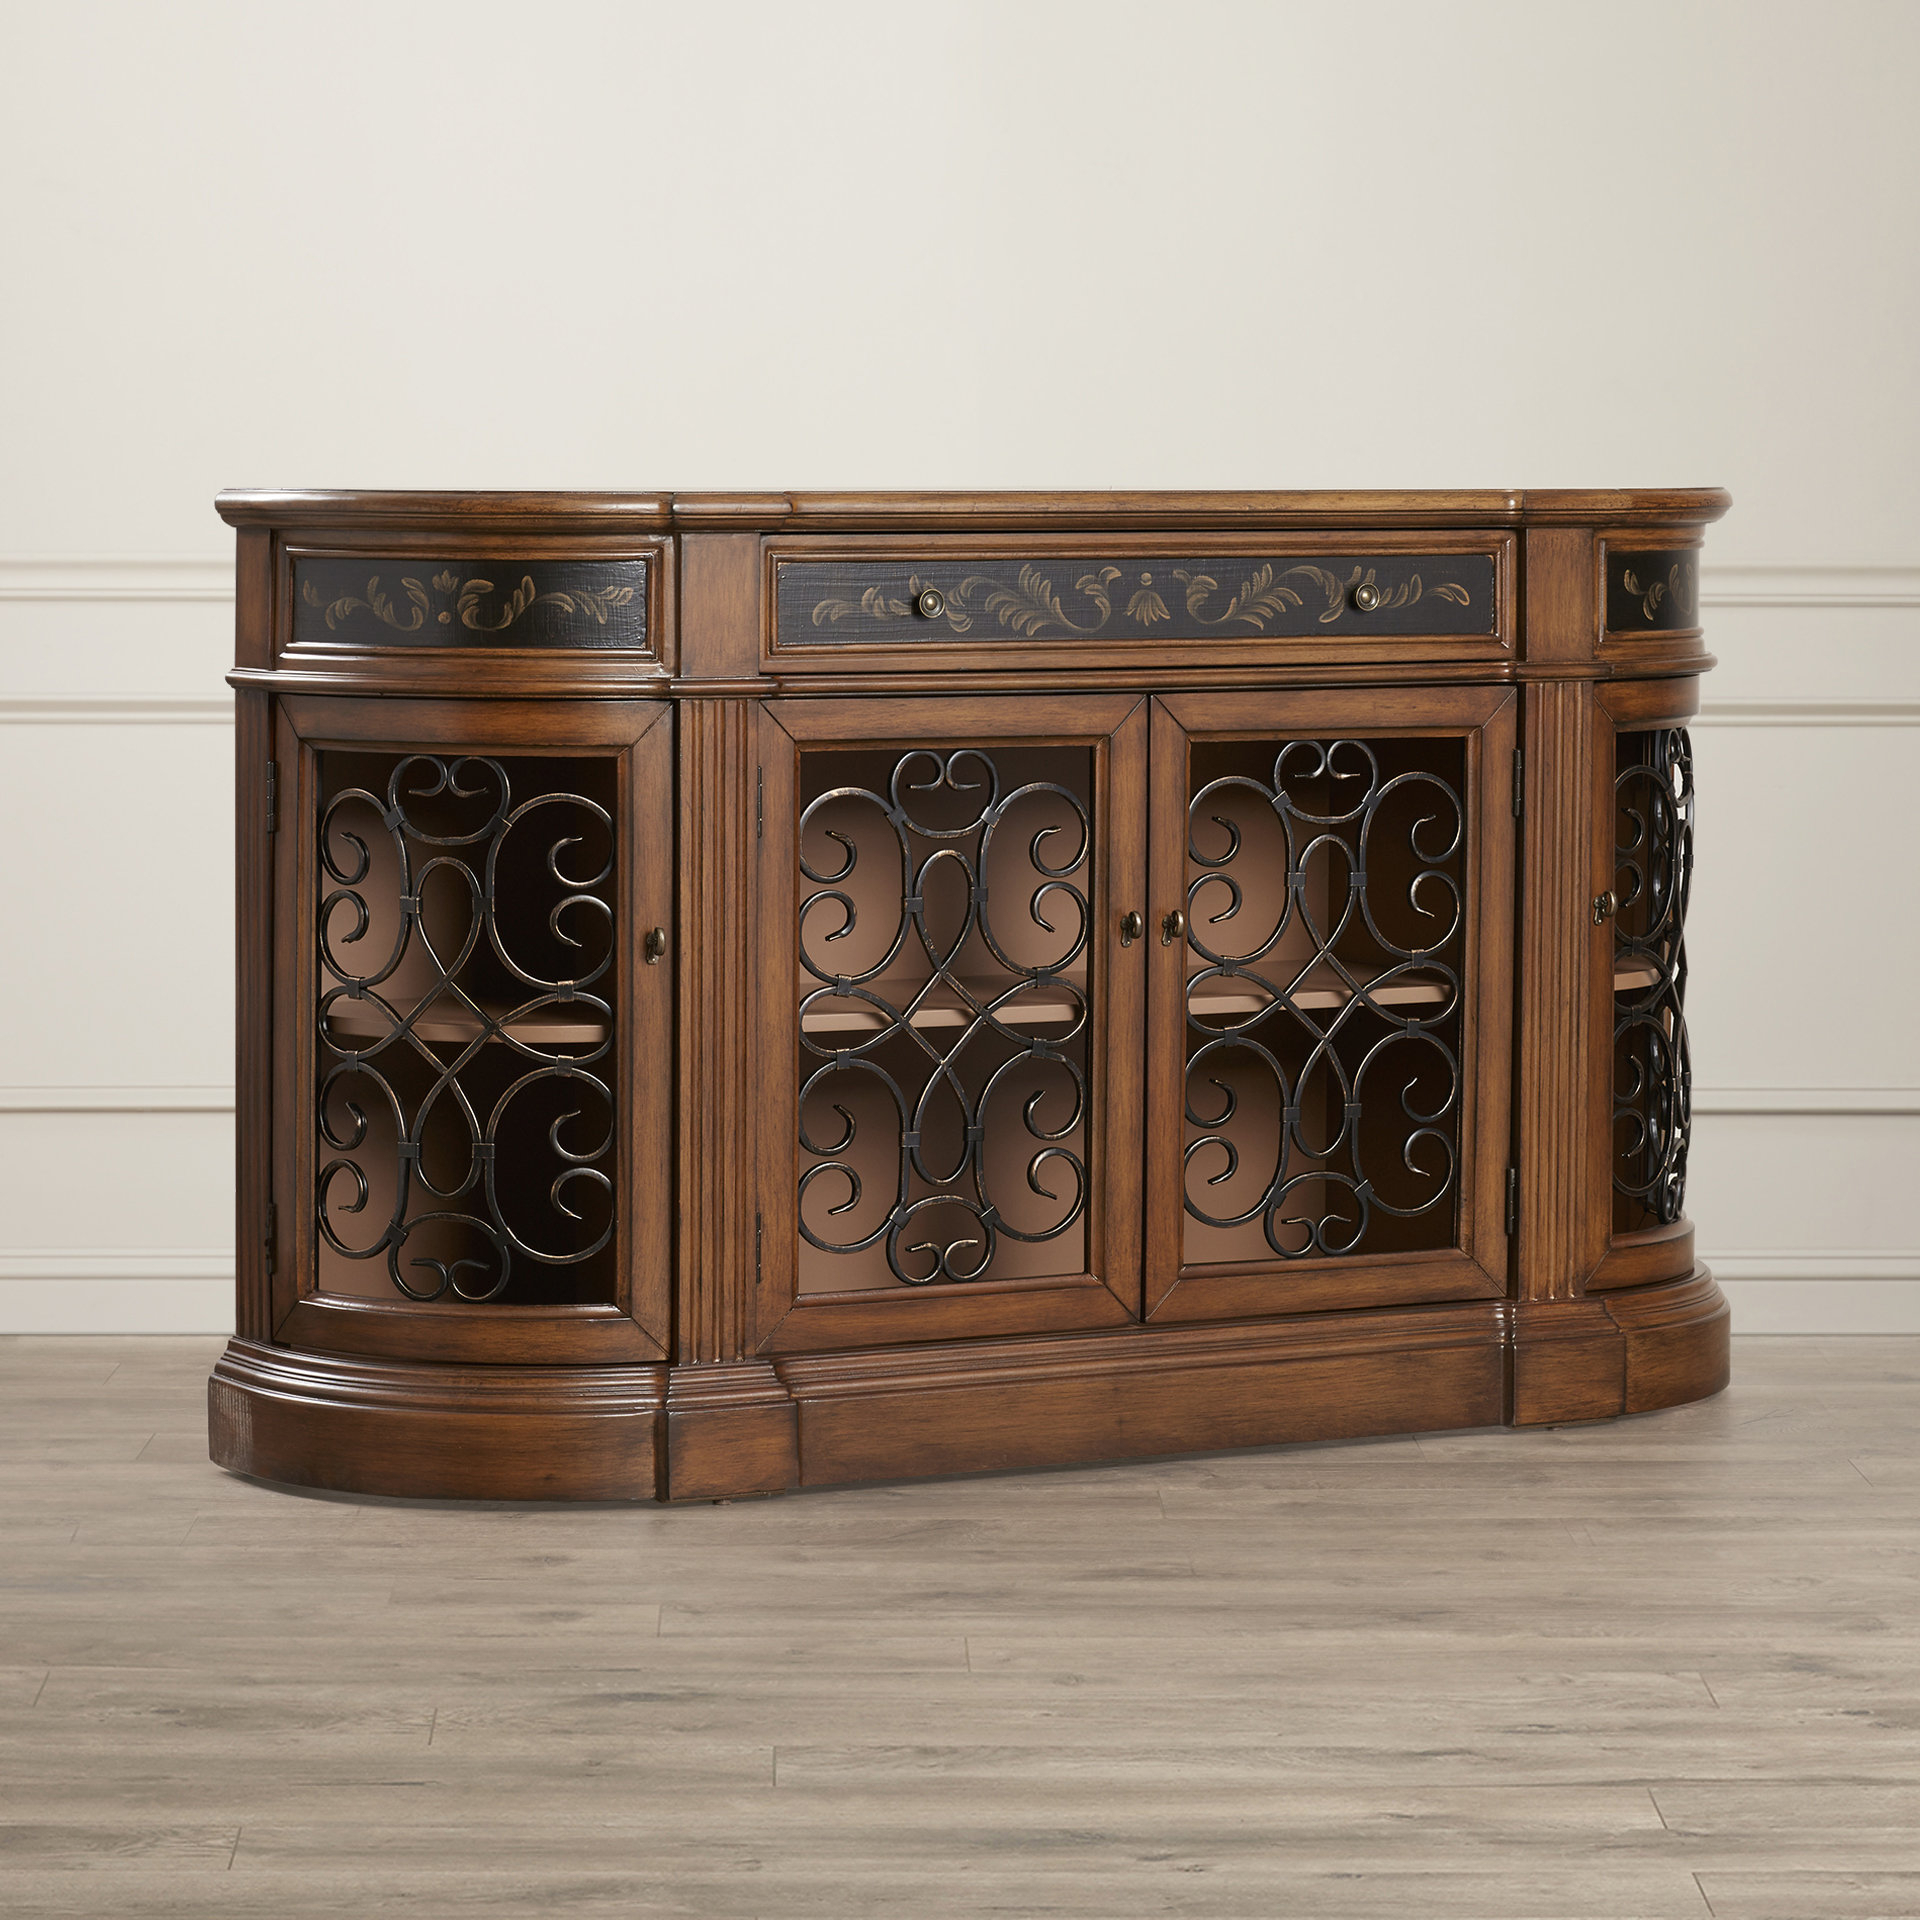 Medium Yellow Wood Sideboard / Credenza Sideboards & Buffets Intended For Nashoba Sideboards (View 8 of 20)